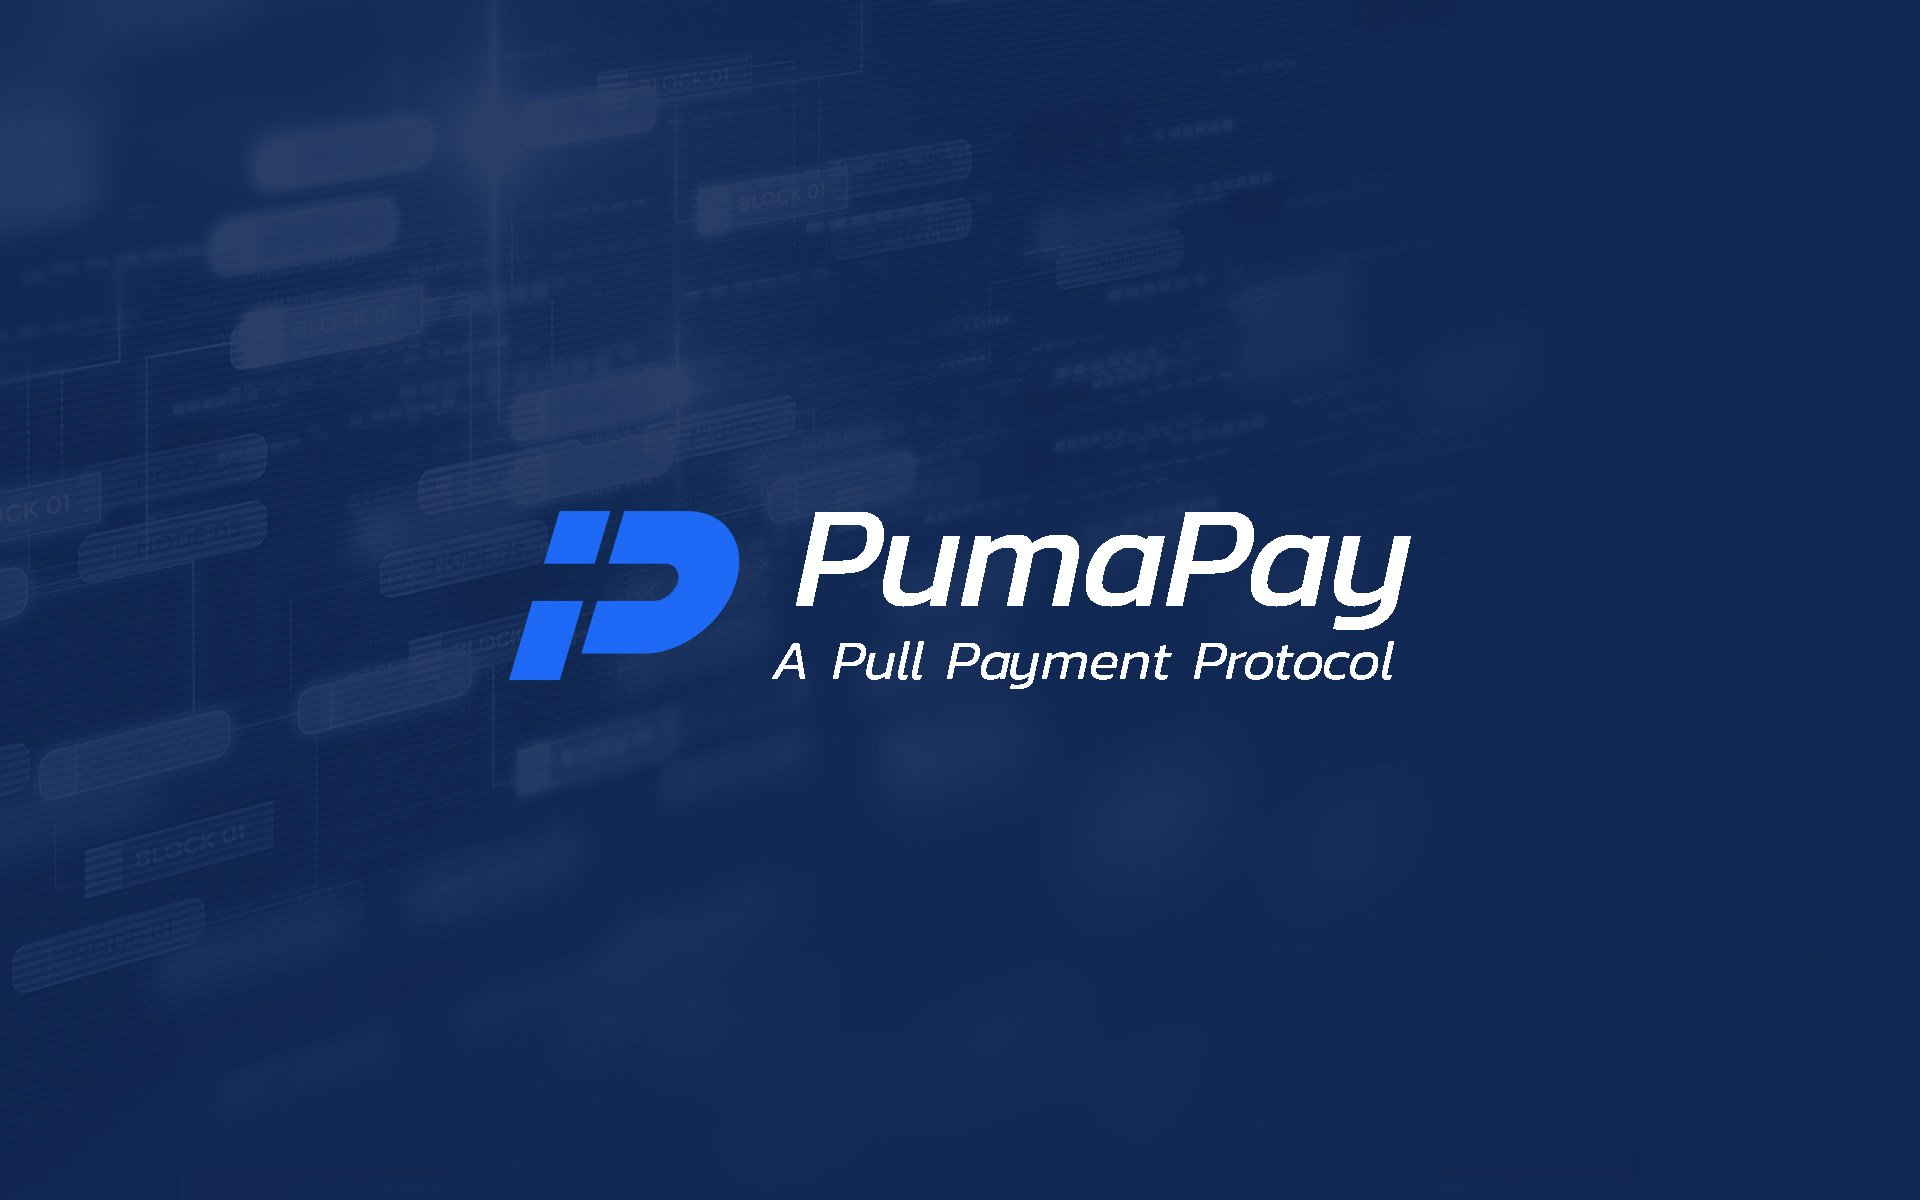 PumaPay Aims To Tackle Credit Card Fraud, Protect Merchants And Save Consumers Money